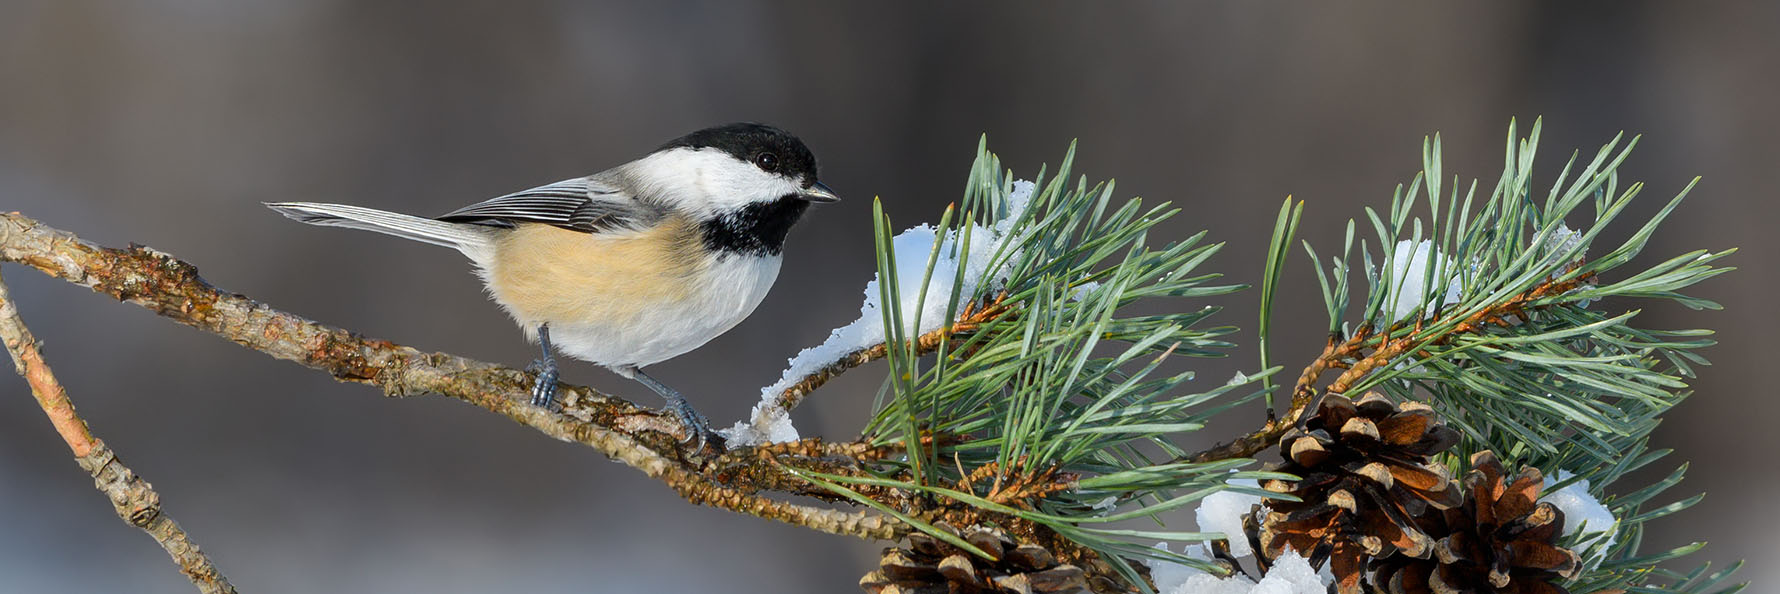 chickadee sitting a snow covered branch